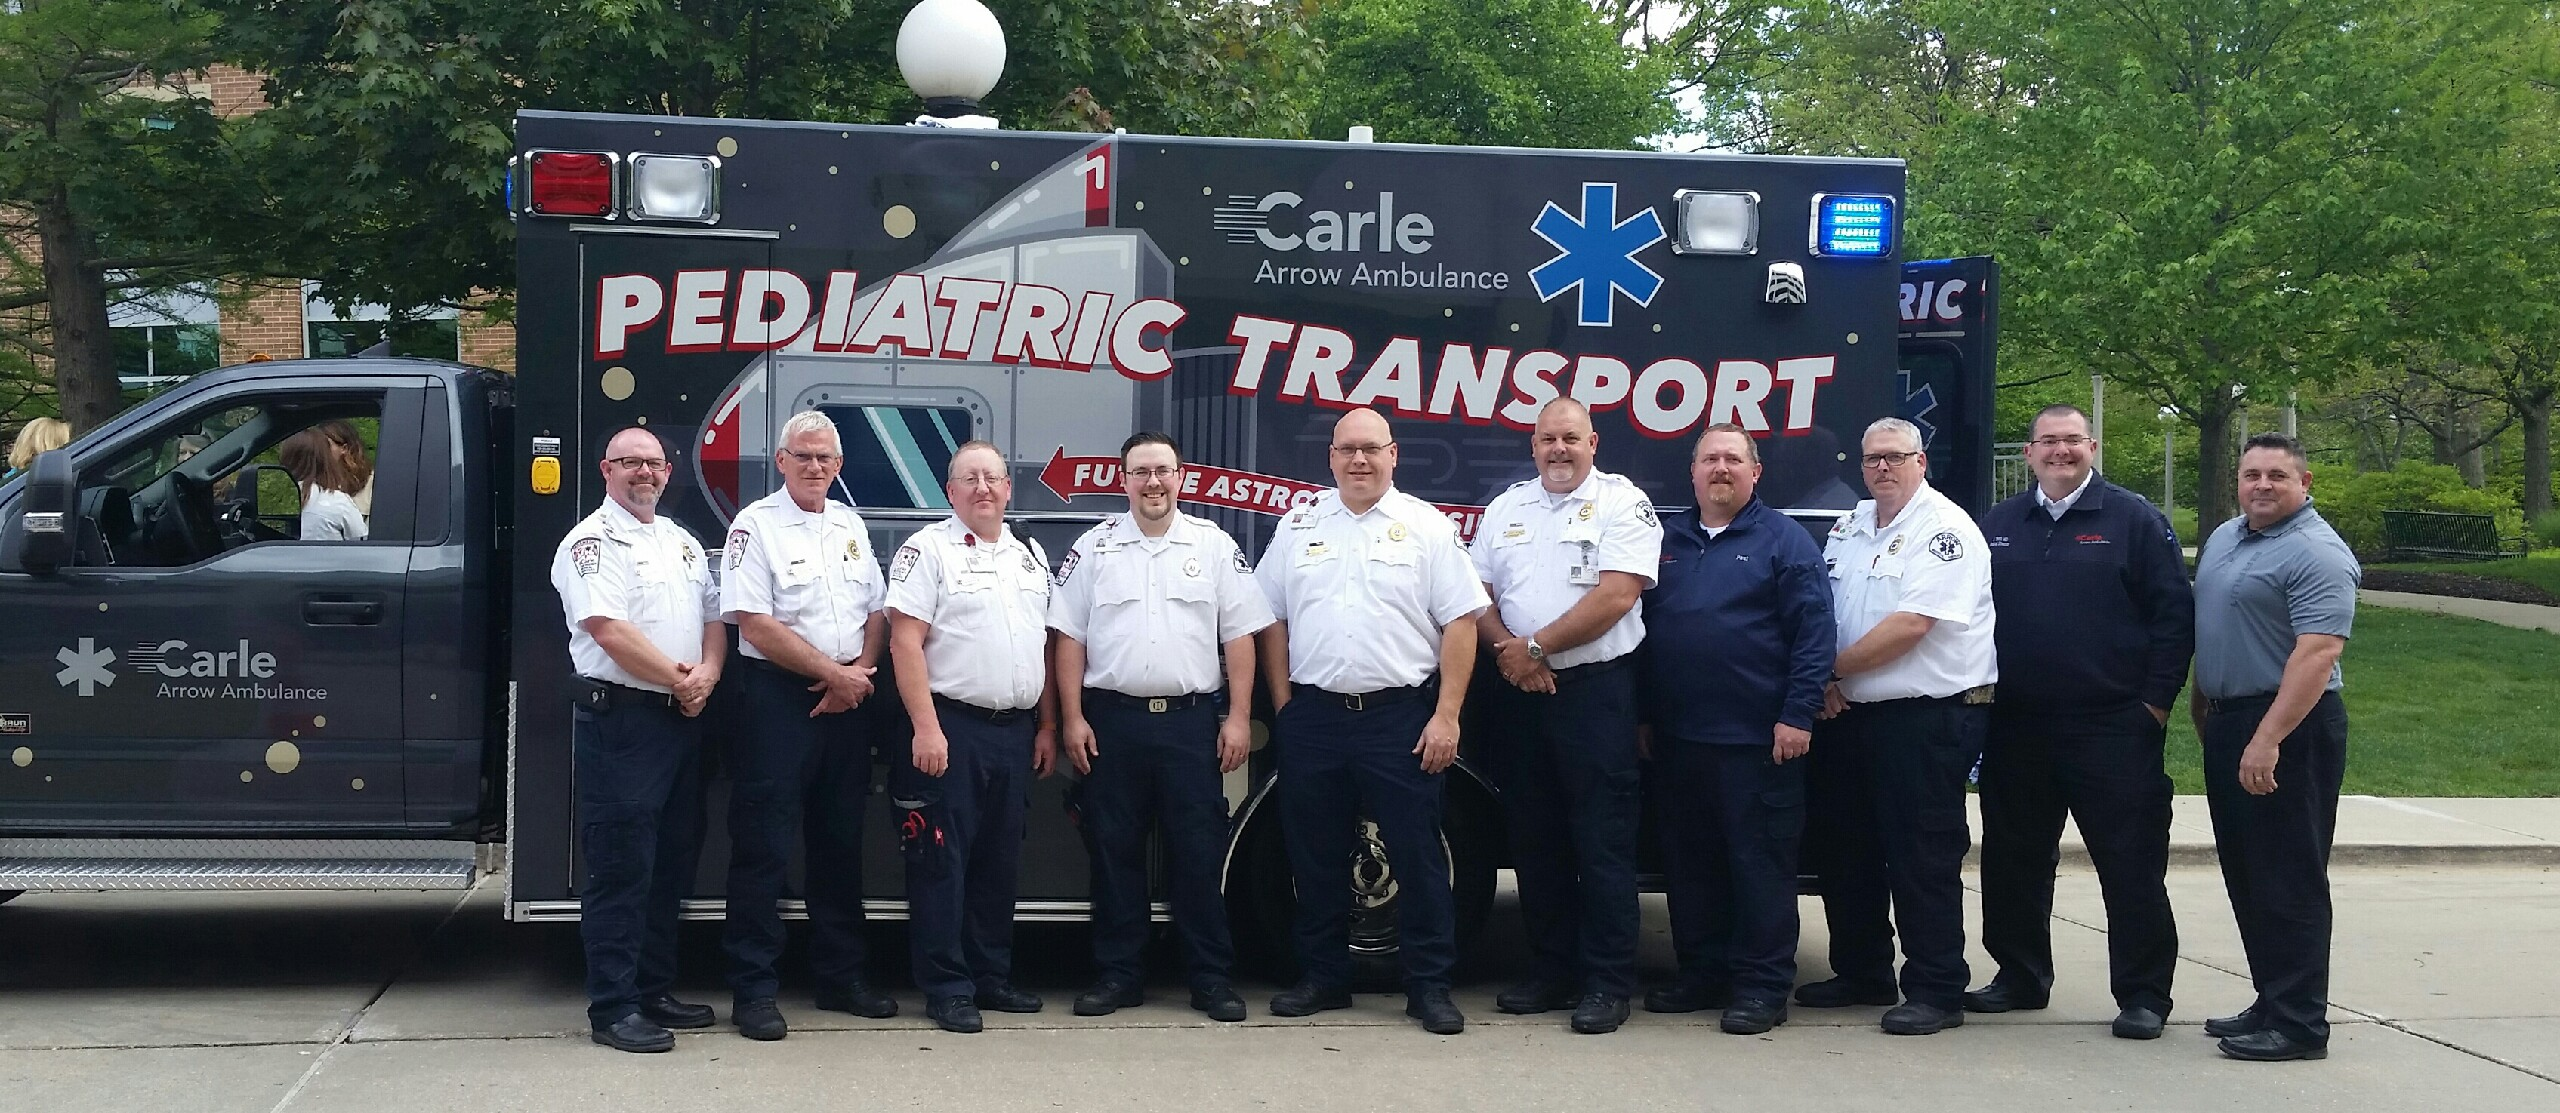 Specialty Care Transport Vehicle Delivered to Carle Arrow